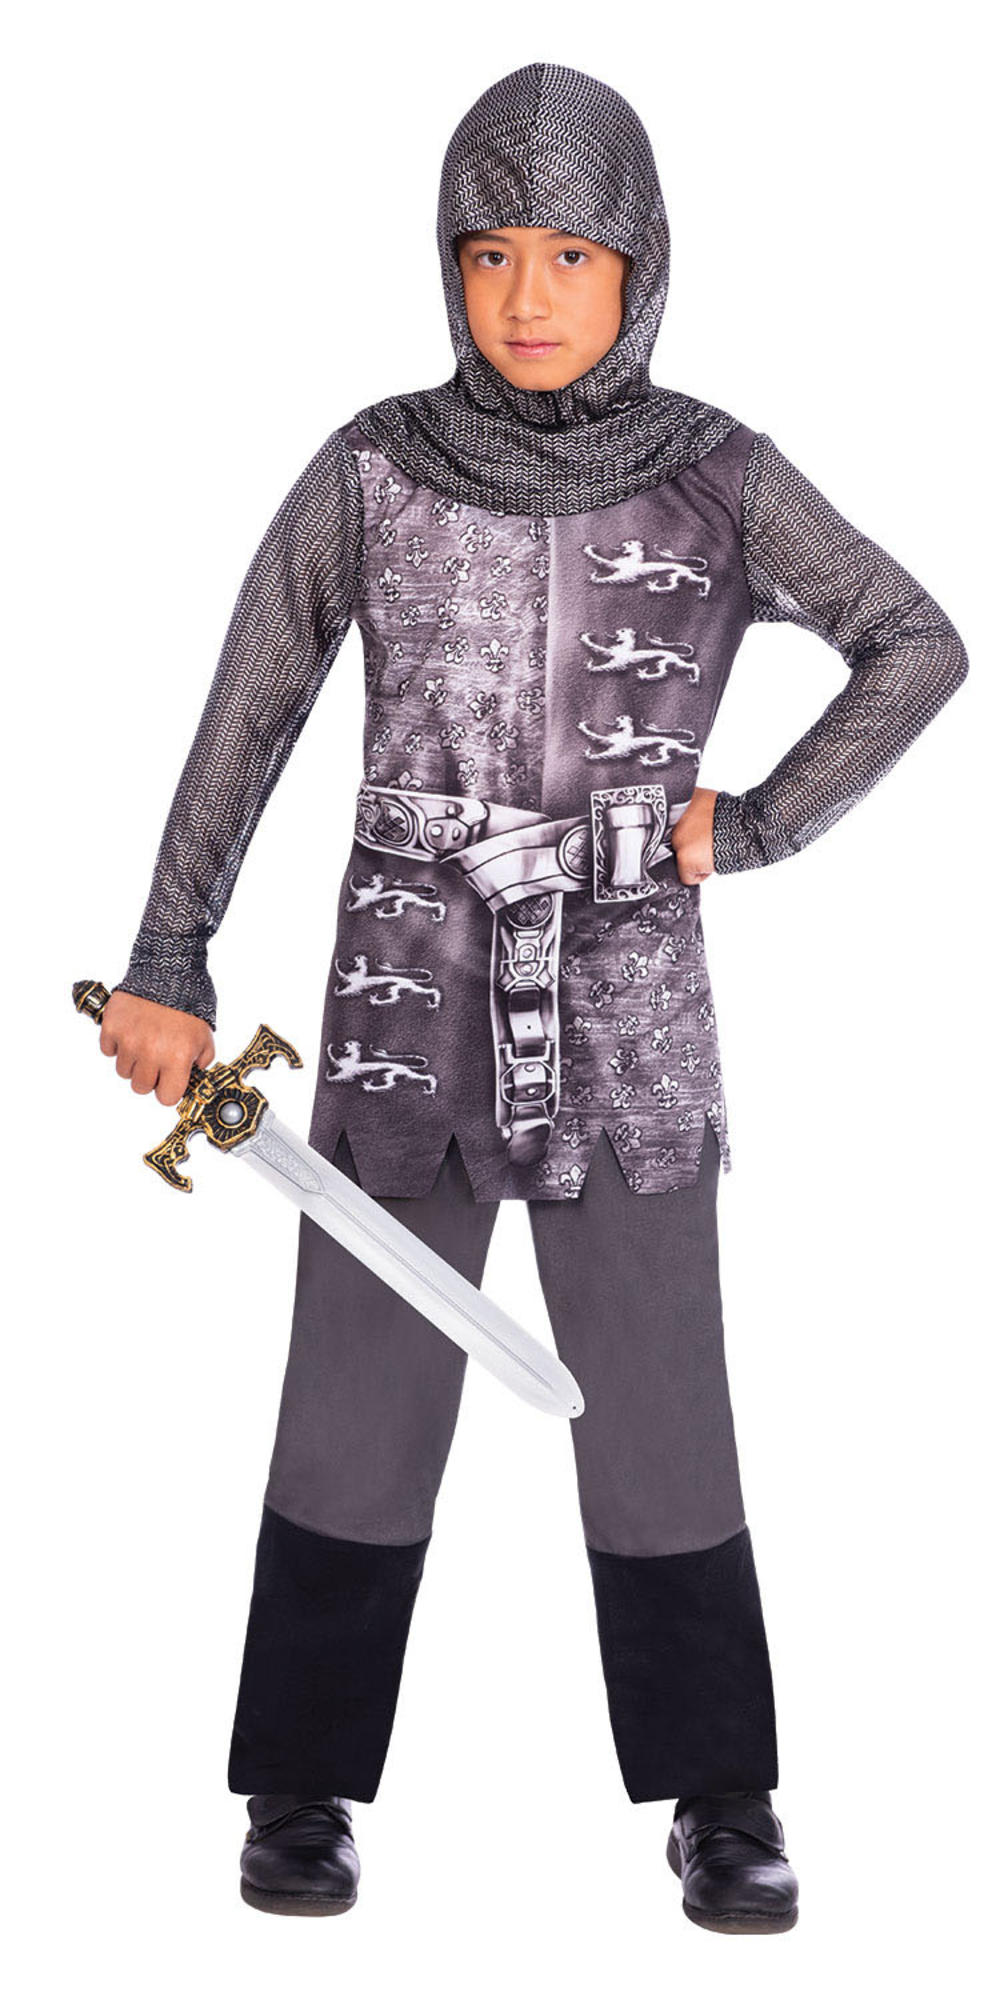 Gallant Knight Boys Fancy Dress Armoured Medieval Soldier Kids Book Day Costume